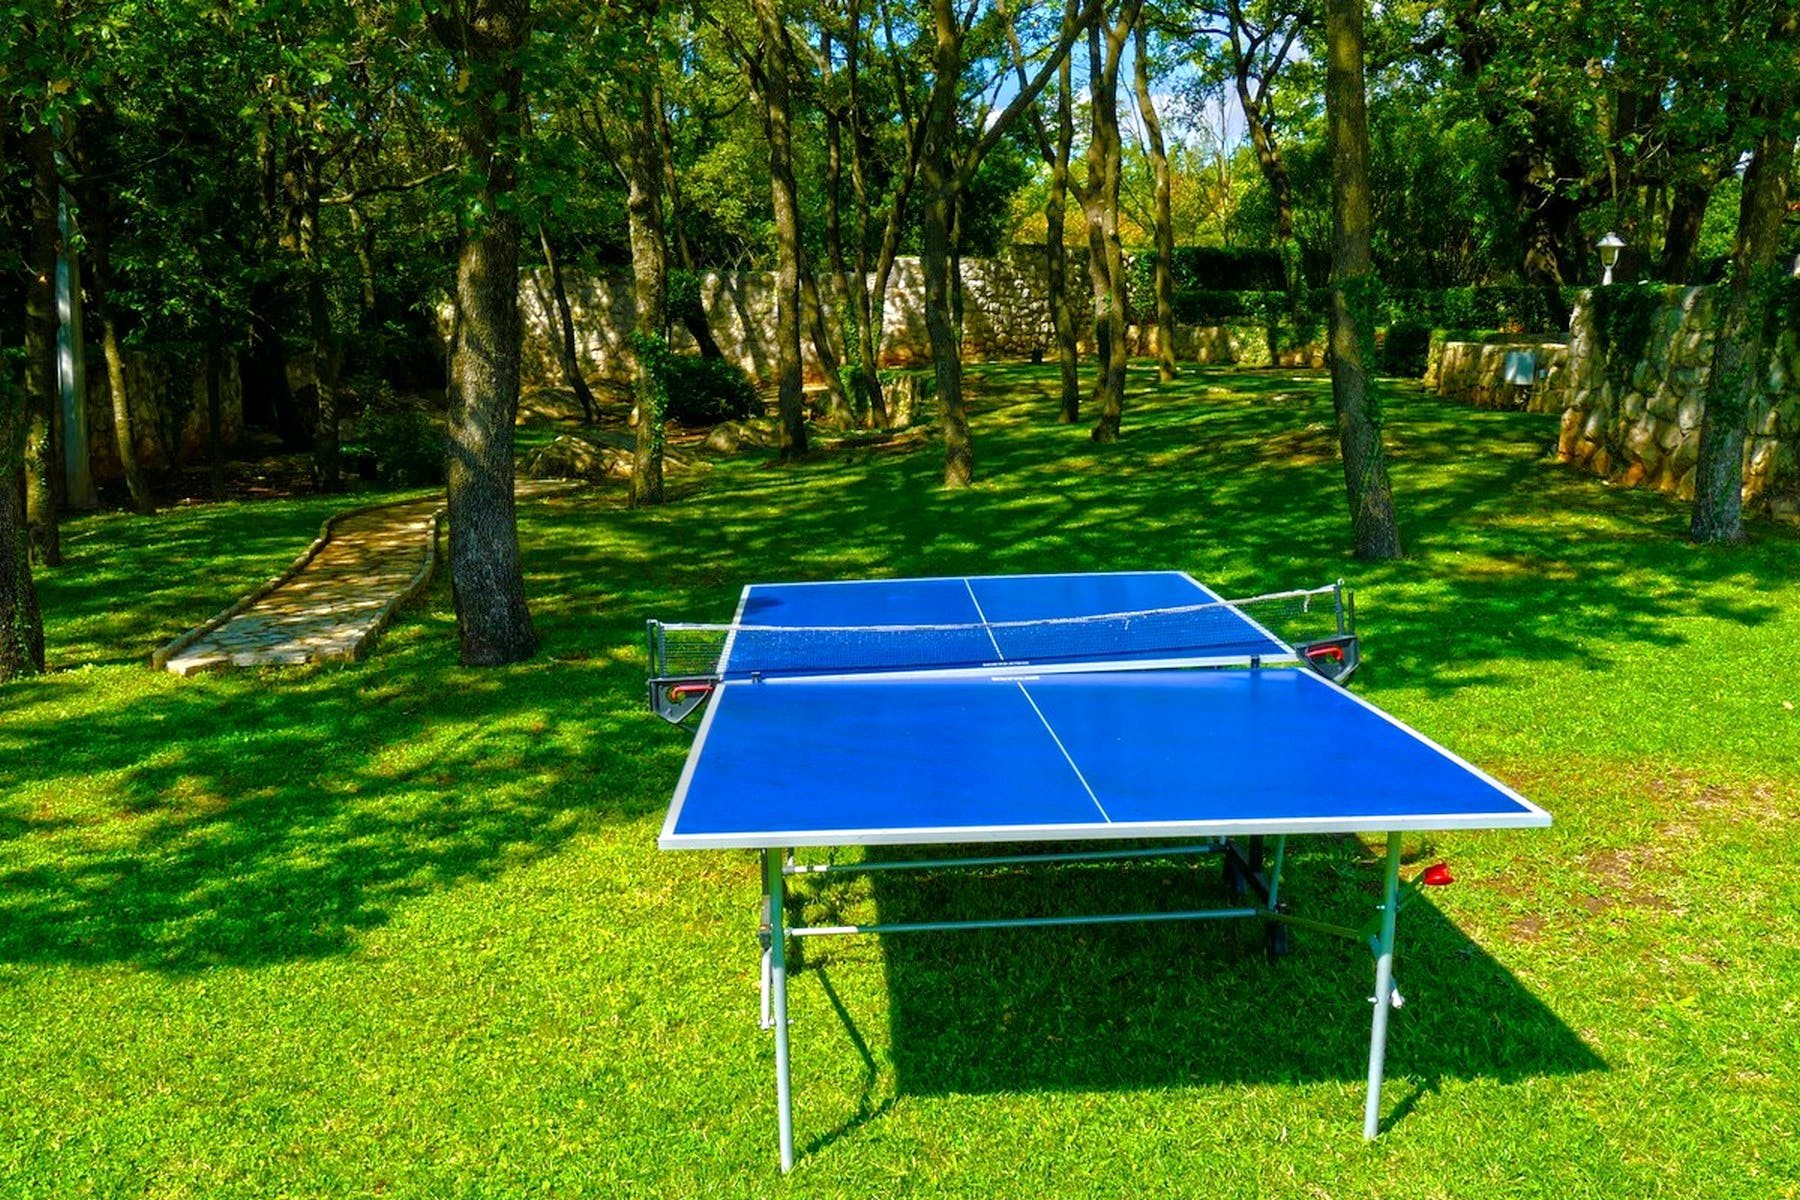 Table tennis available in the garden